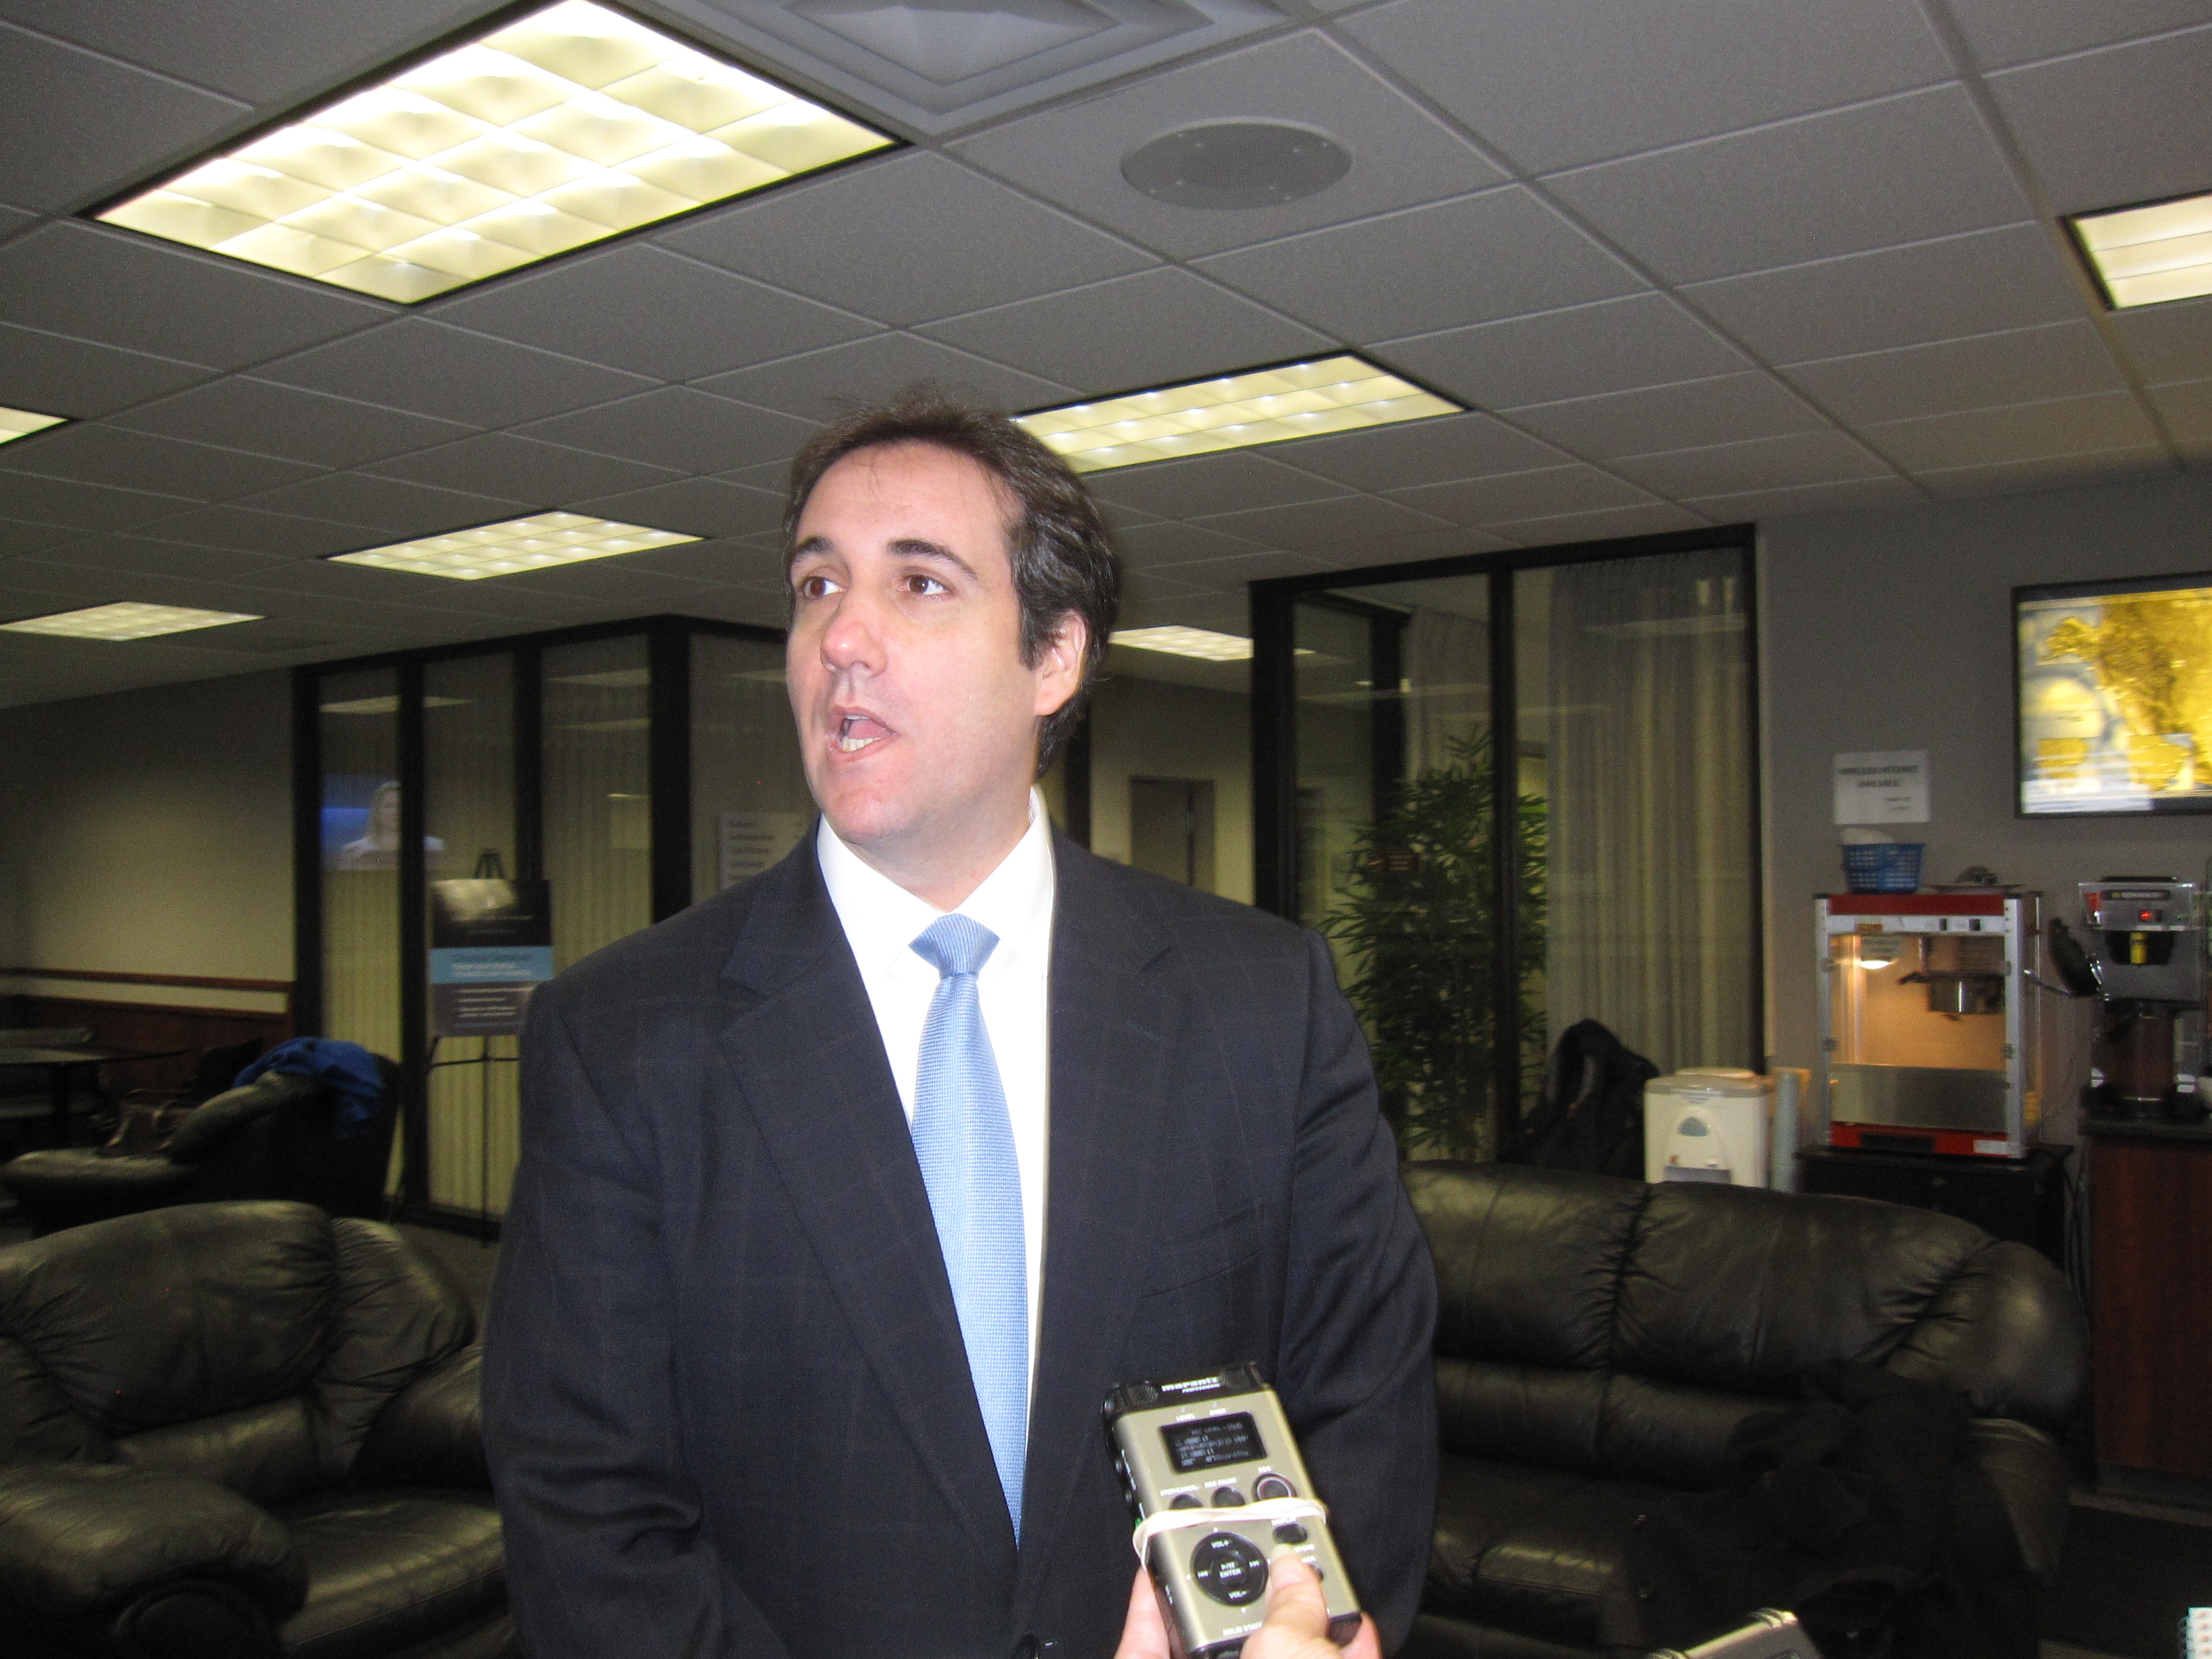 Trump Lawyer Told to Be Set for Fast Review of Cohen Records